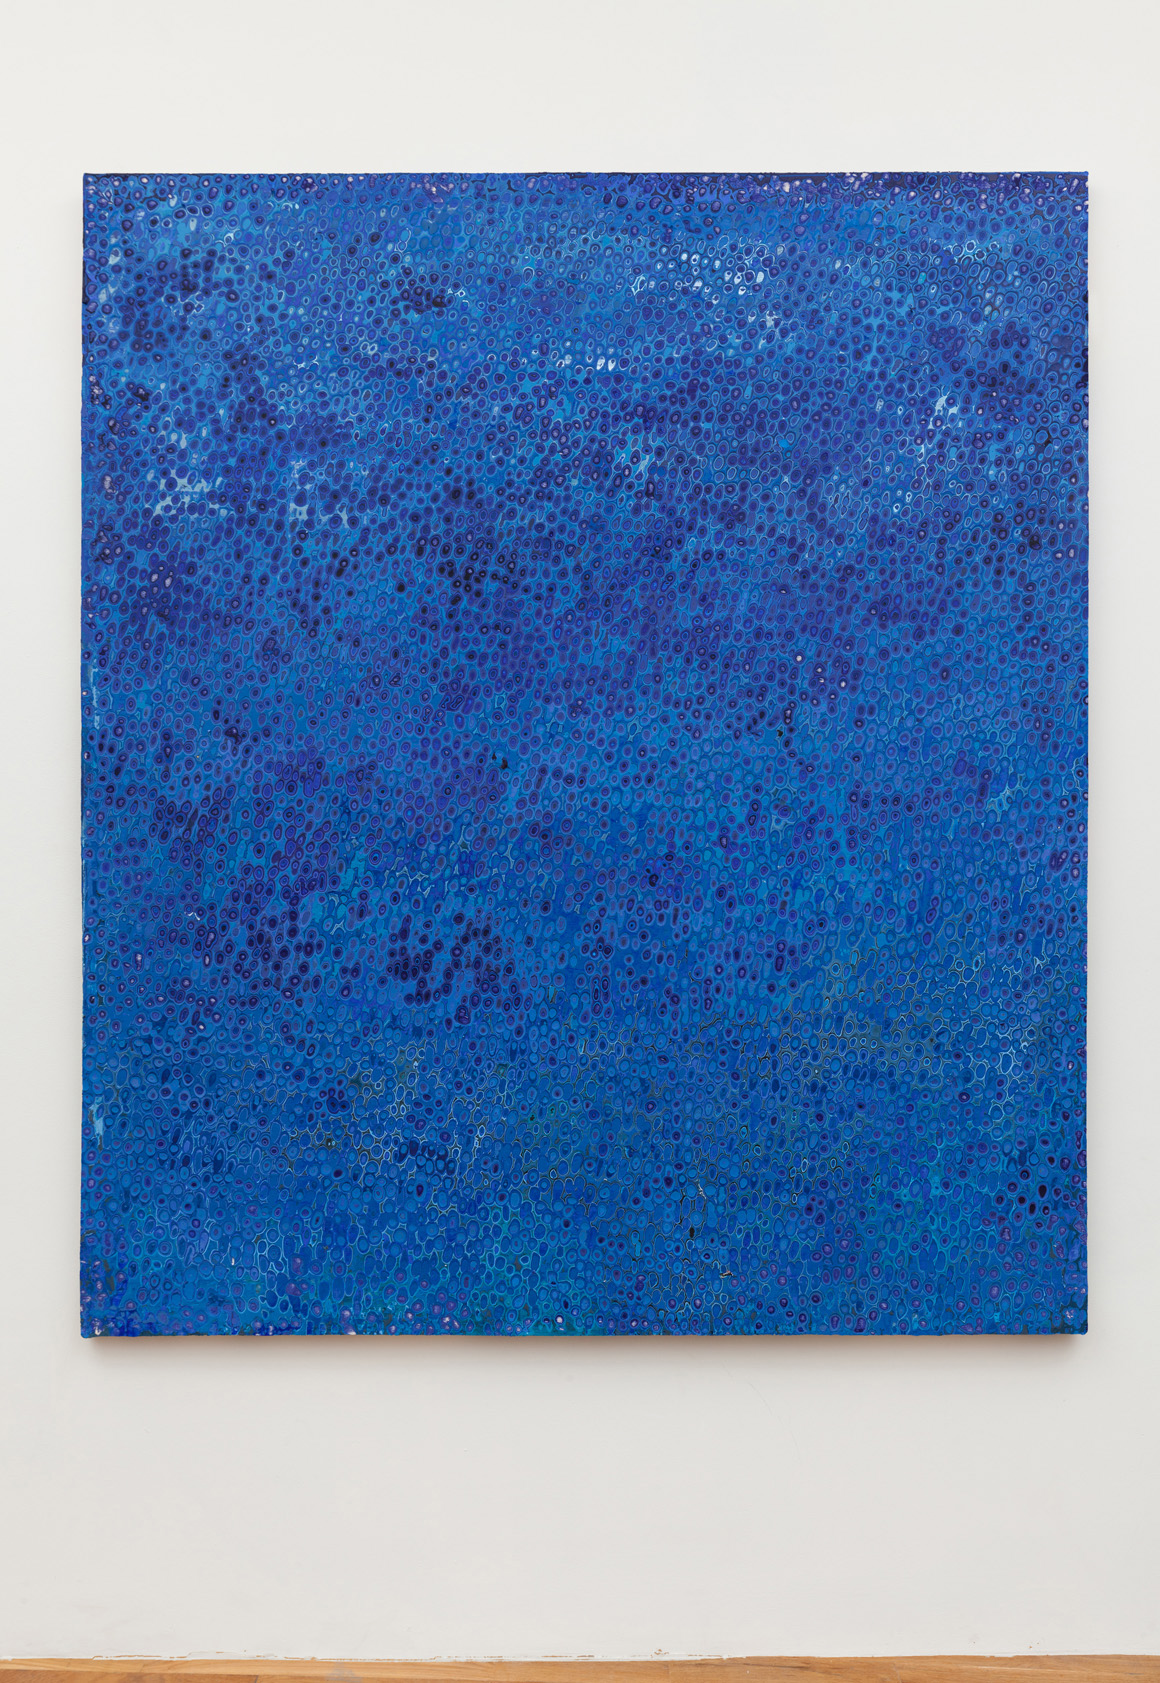 "<p><span class=""name"">Andrew Jensdotter</span><br><em>Blue 92</em><span class='media'>Carved latex on canvas</span>80 x 68 in (203.2 x 172.7 cm)<br>2018<br></p>"